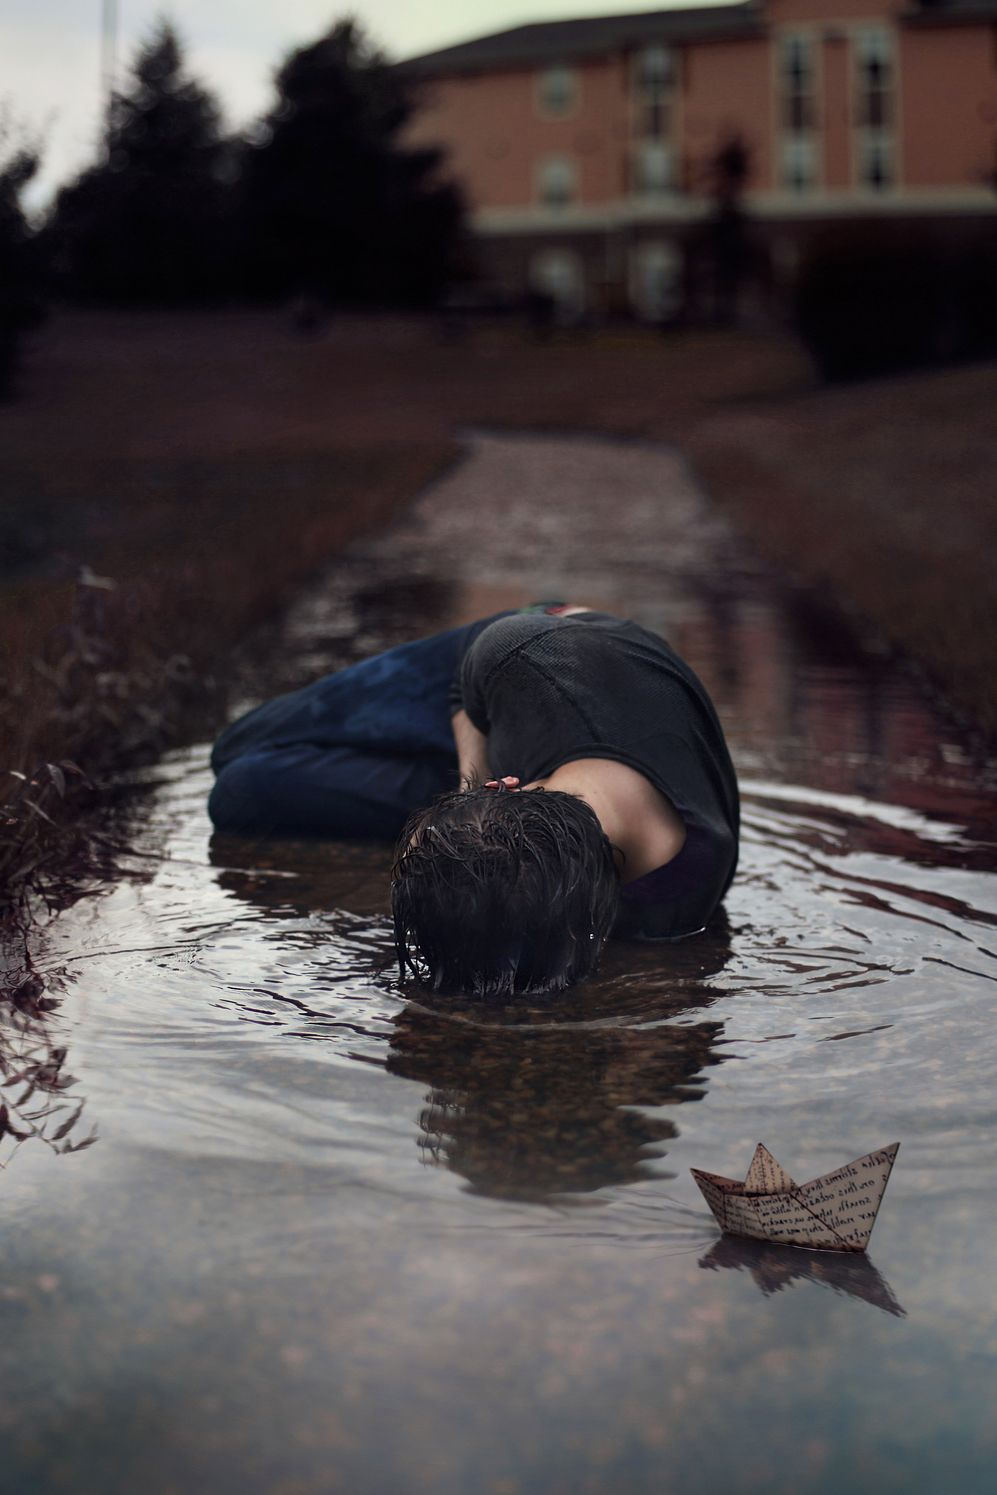 alone sad hopeless melancholy lovely photos pinterest